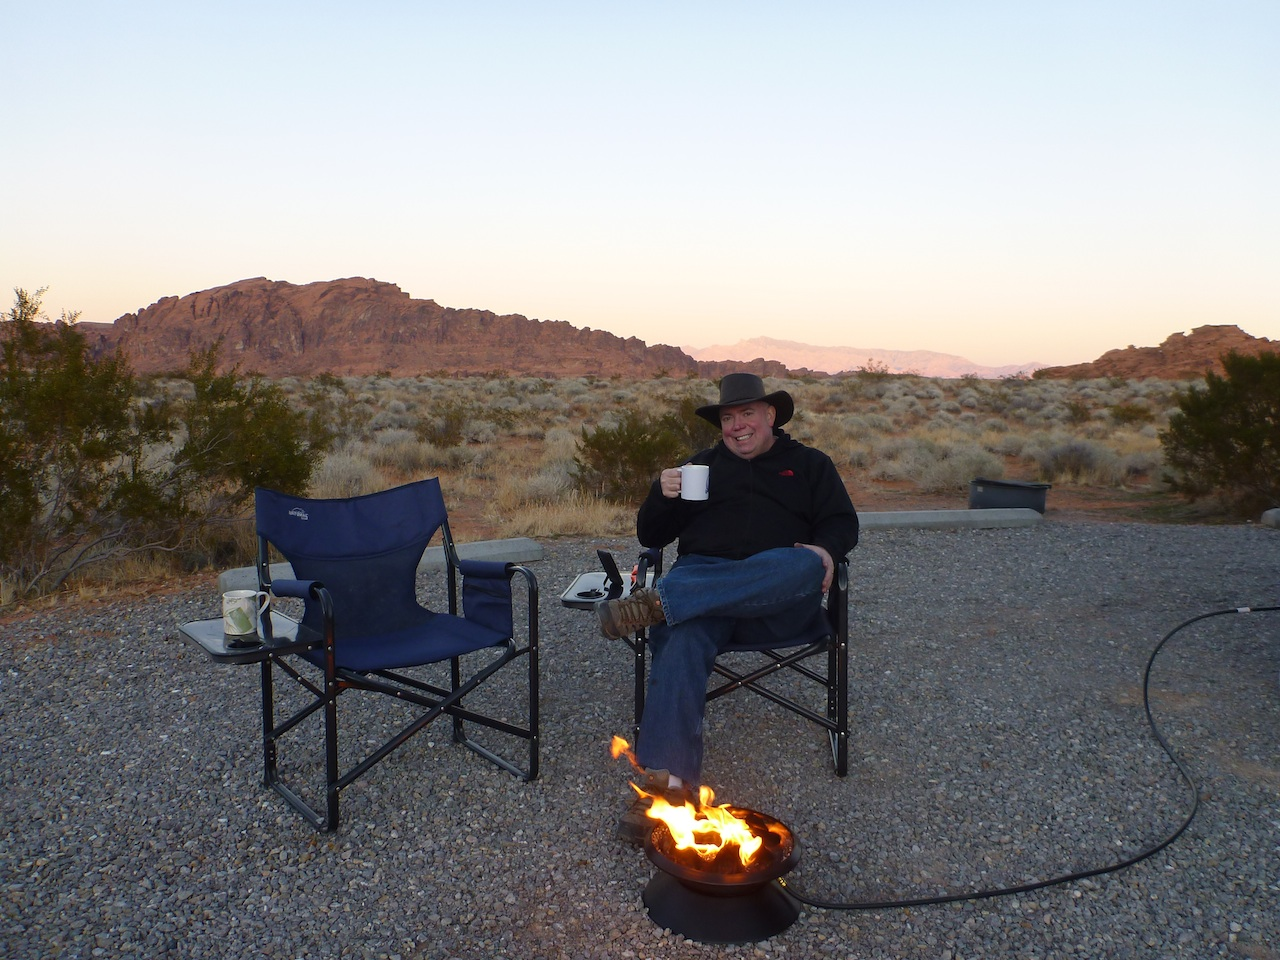 David Enjoying The Evening At Valley Of Fire State Park